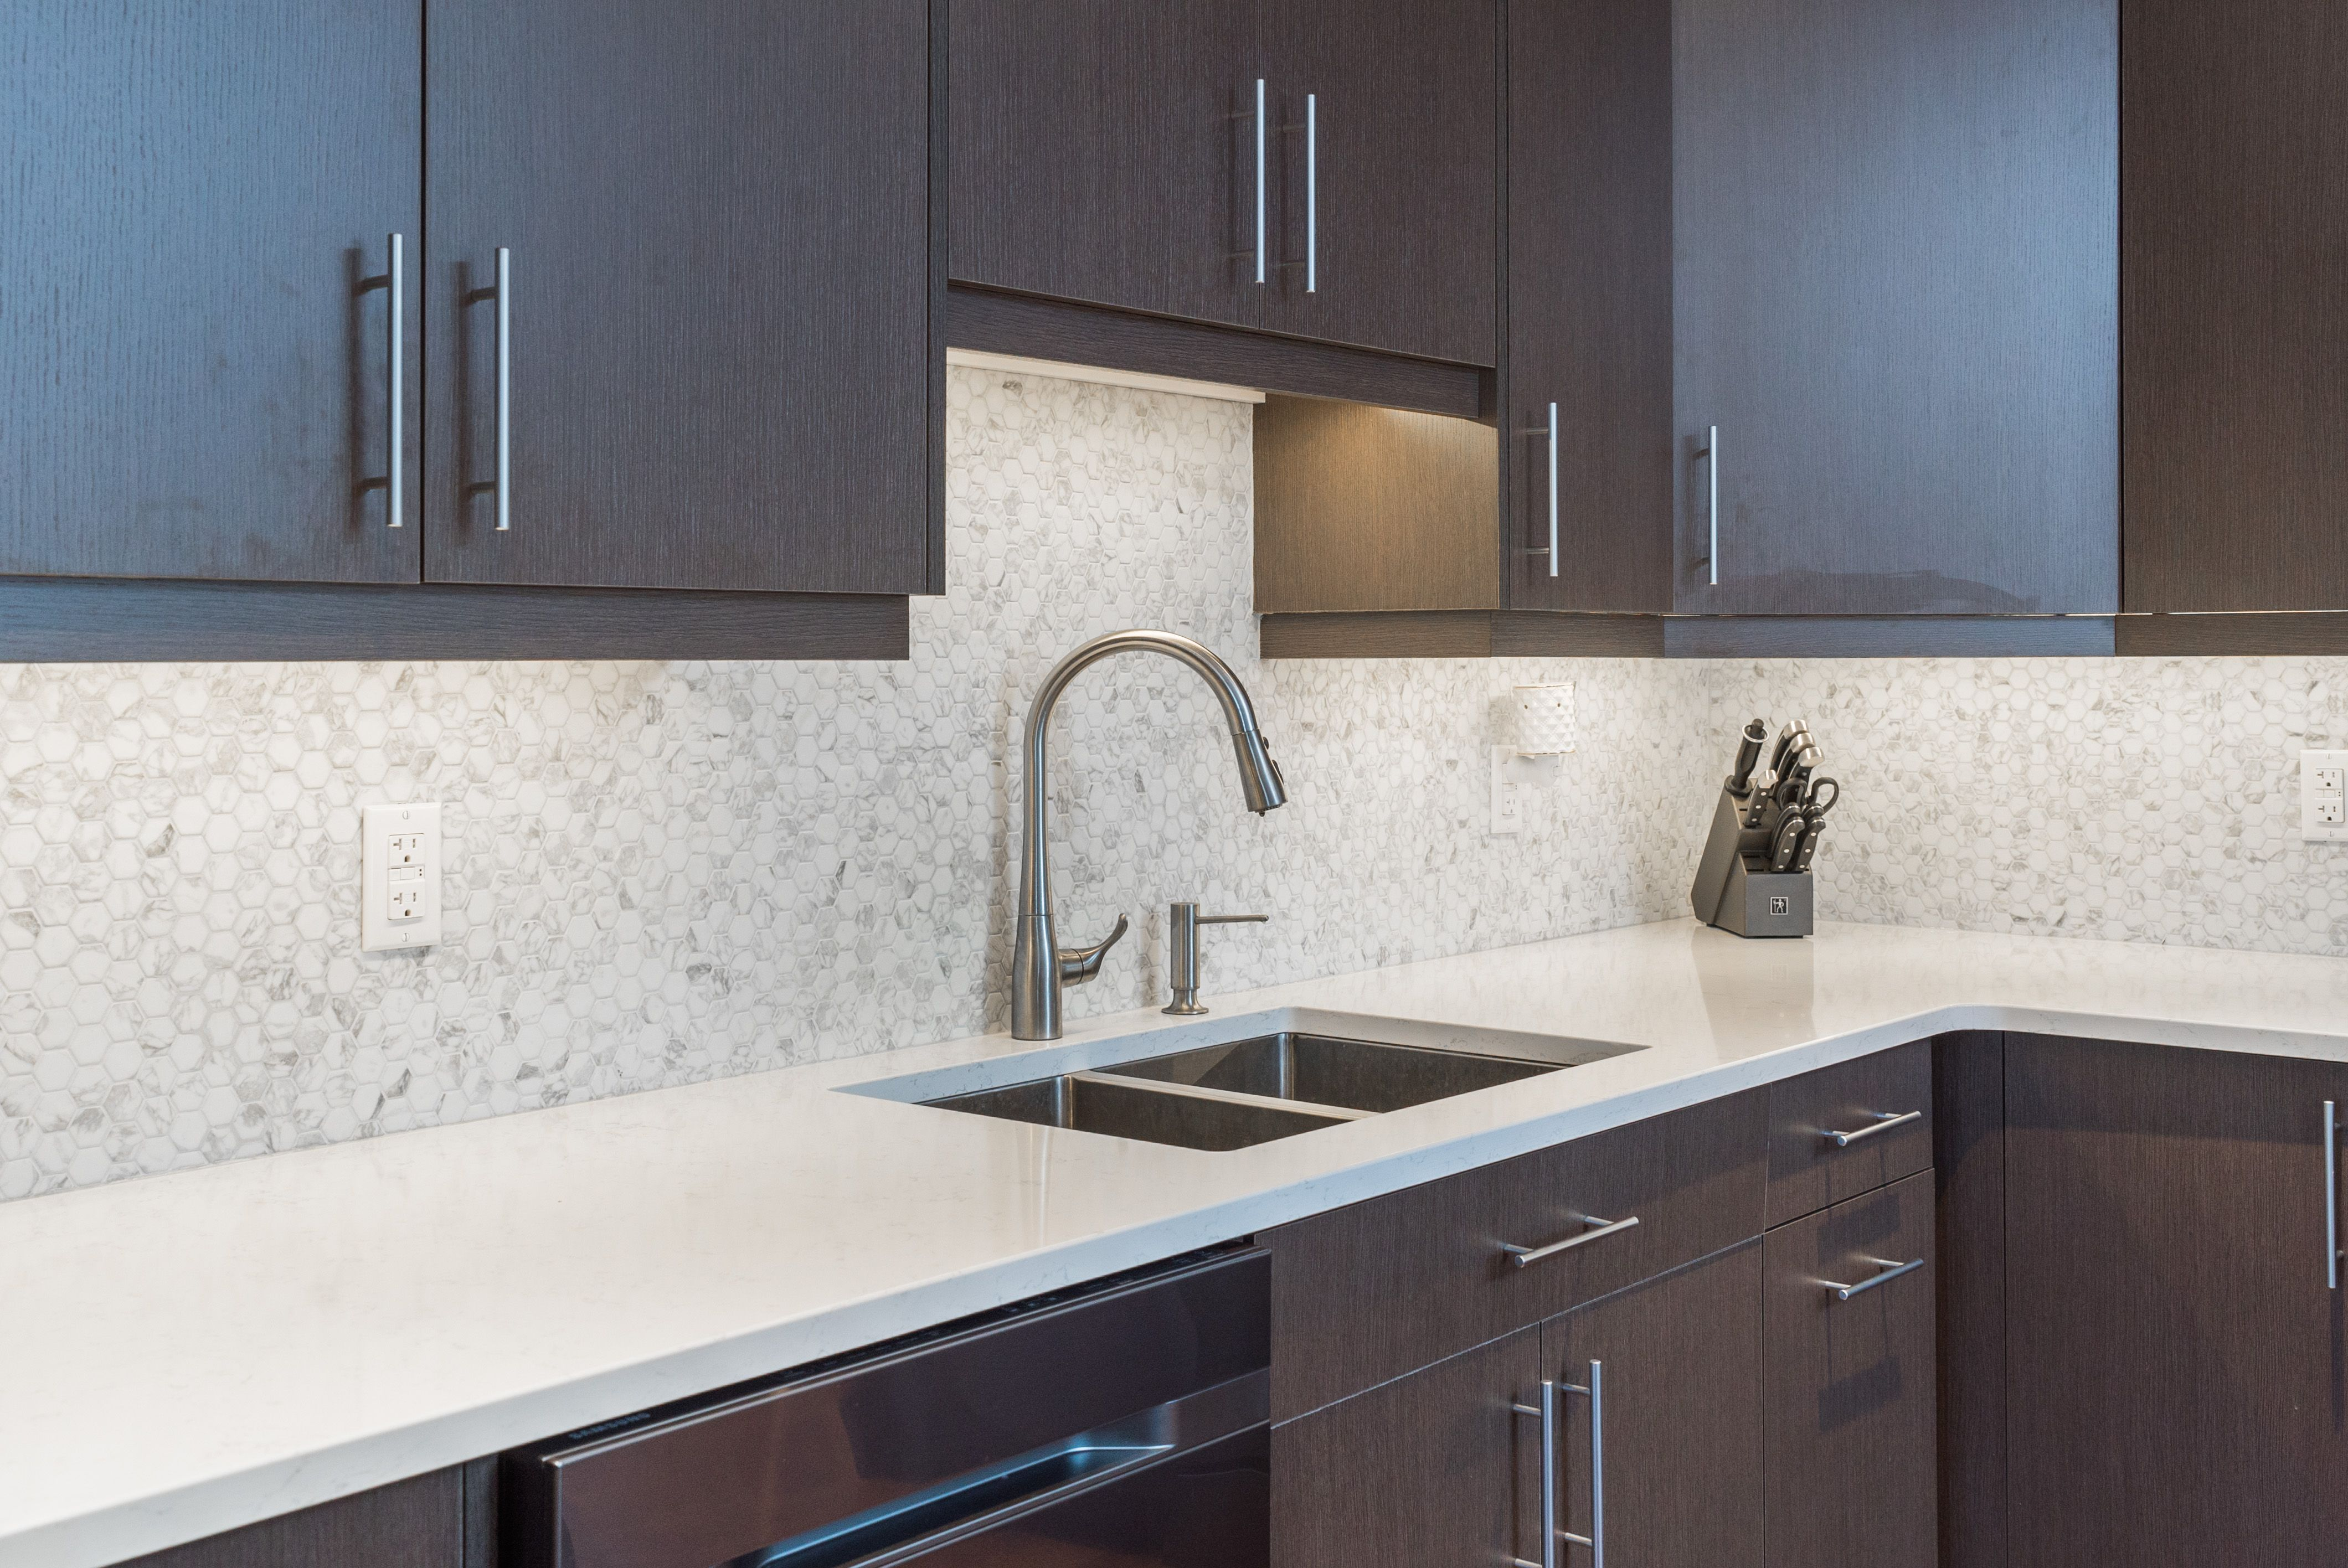 Dorable King Kitchen And Bath Collection - Kitchen Cabinets | Ideas ...